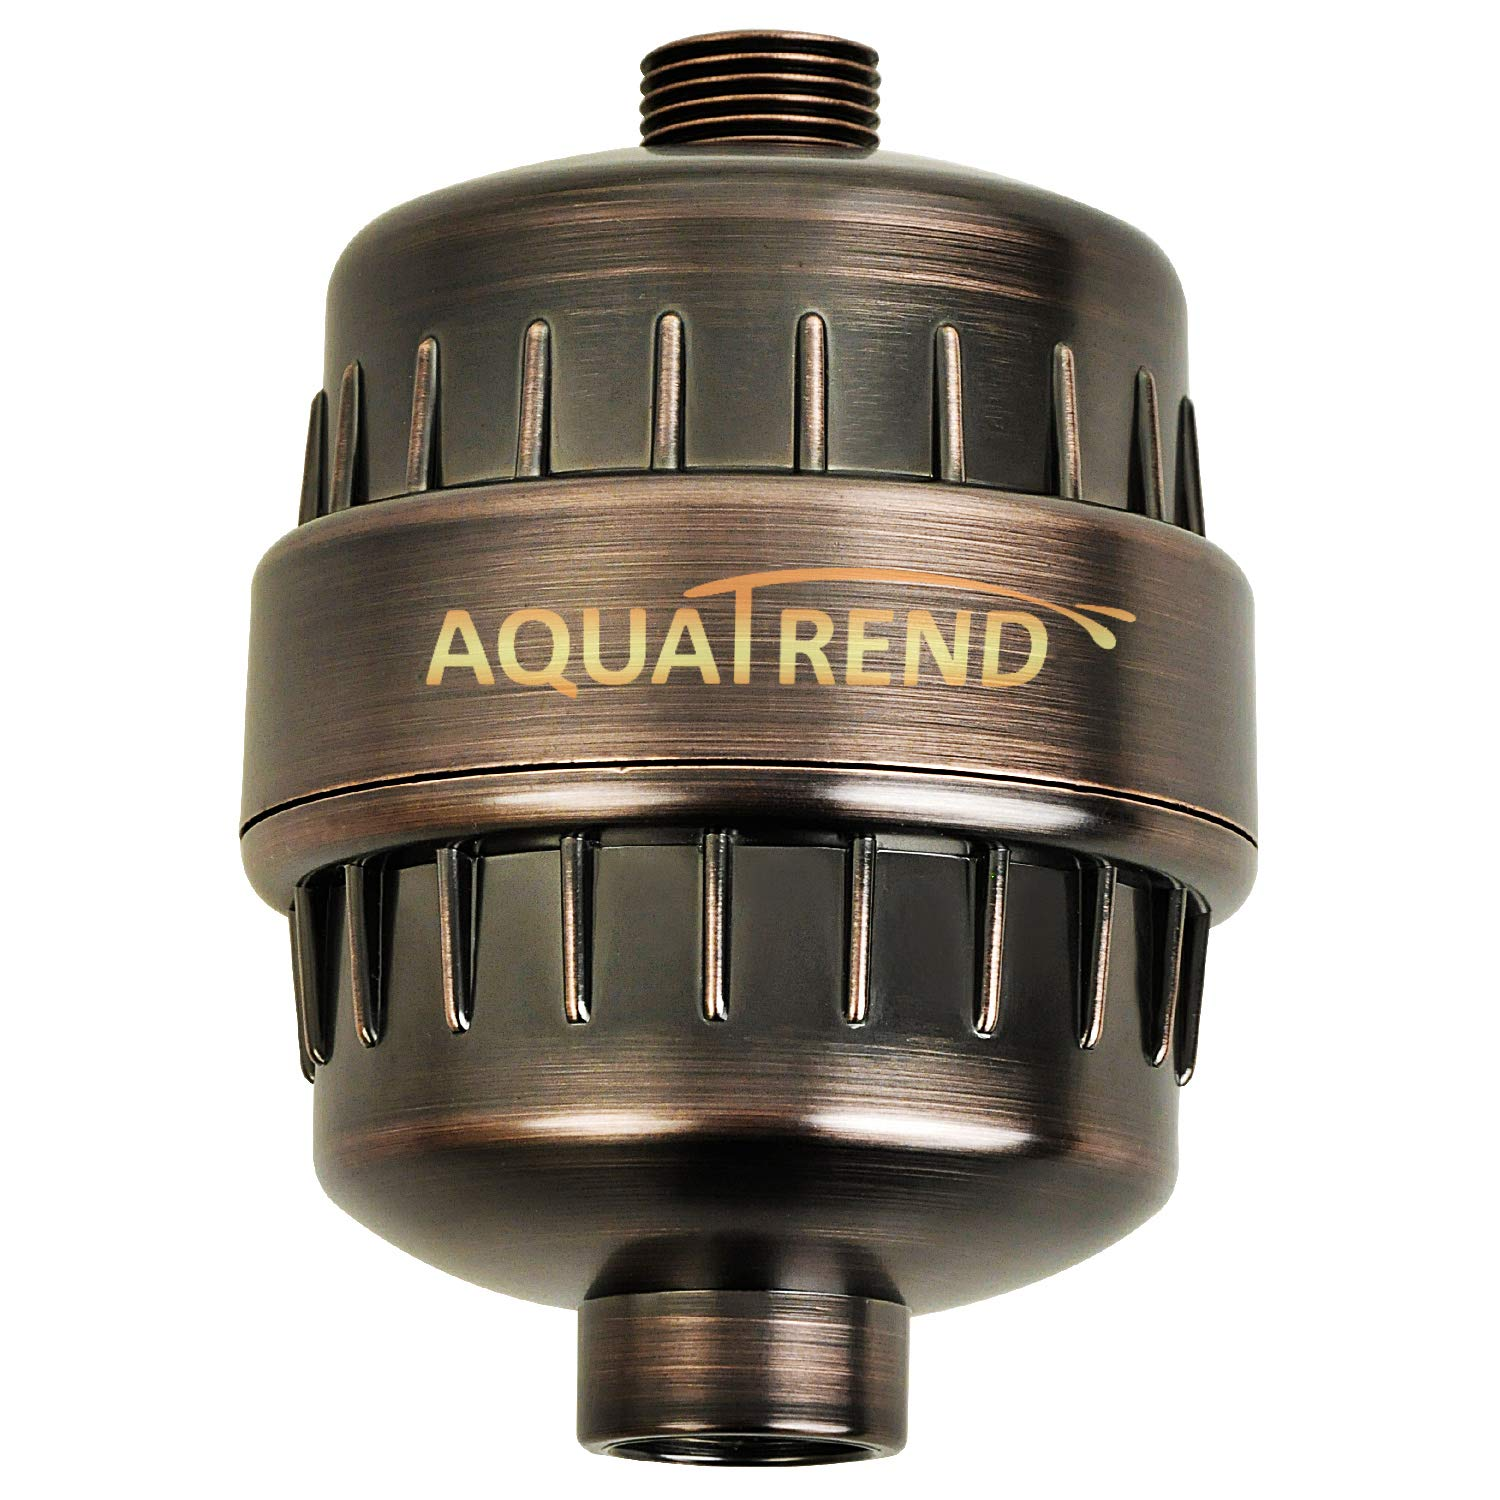 AQUATREND Oil-Rubbed Bronze Universal 15-Stage Shower Filter Shower Head Filter for Hard Water Reduce Chlorine,Dry Itchy Skin,Dandruff, Improve the Condition of Your Skin,Hair and Nails by Aquatrend